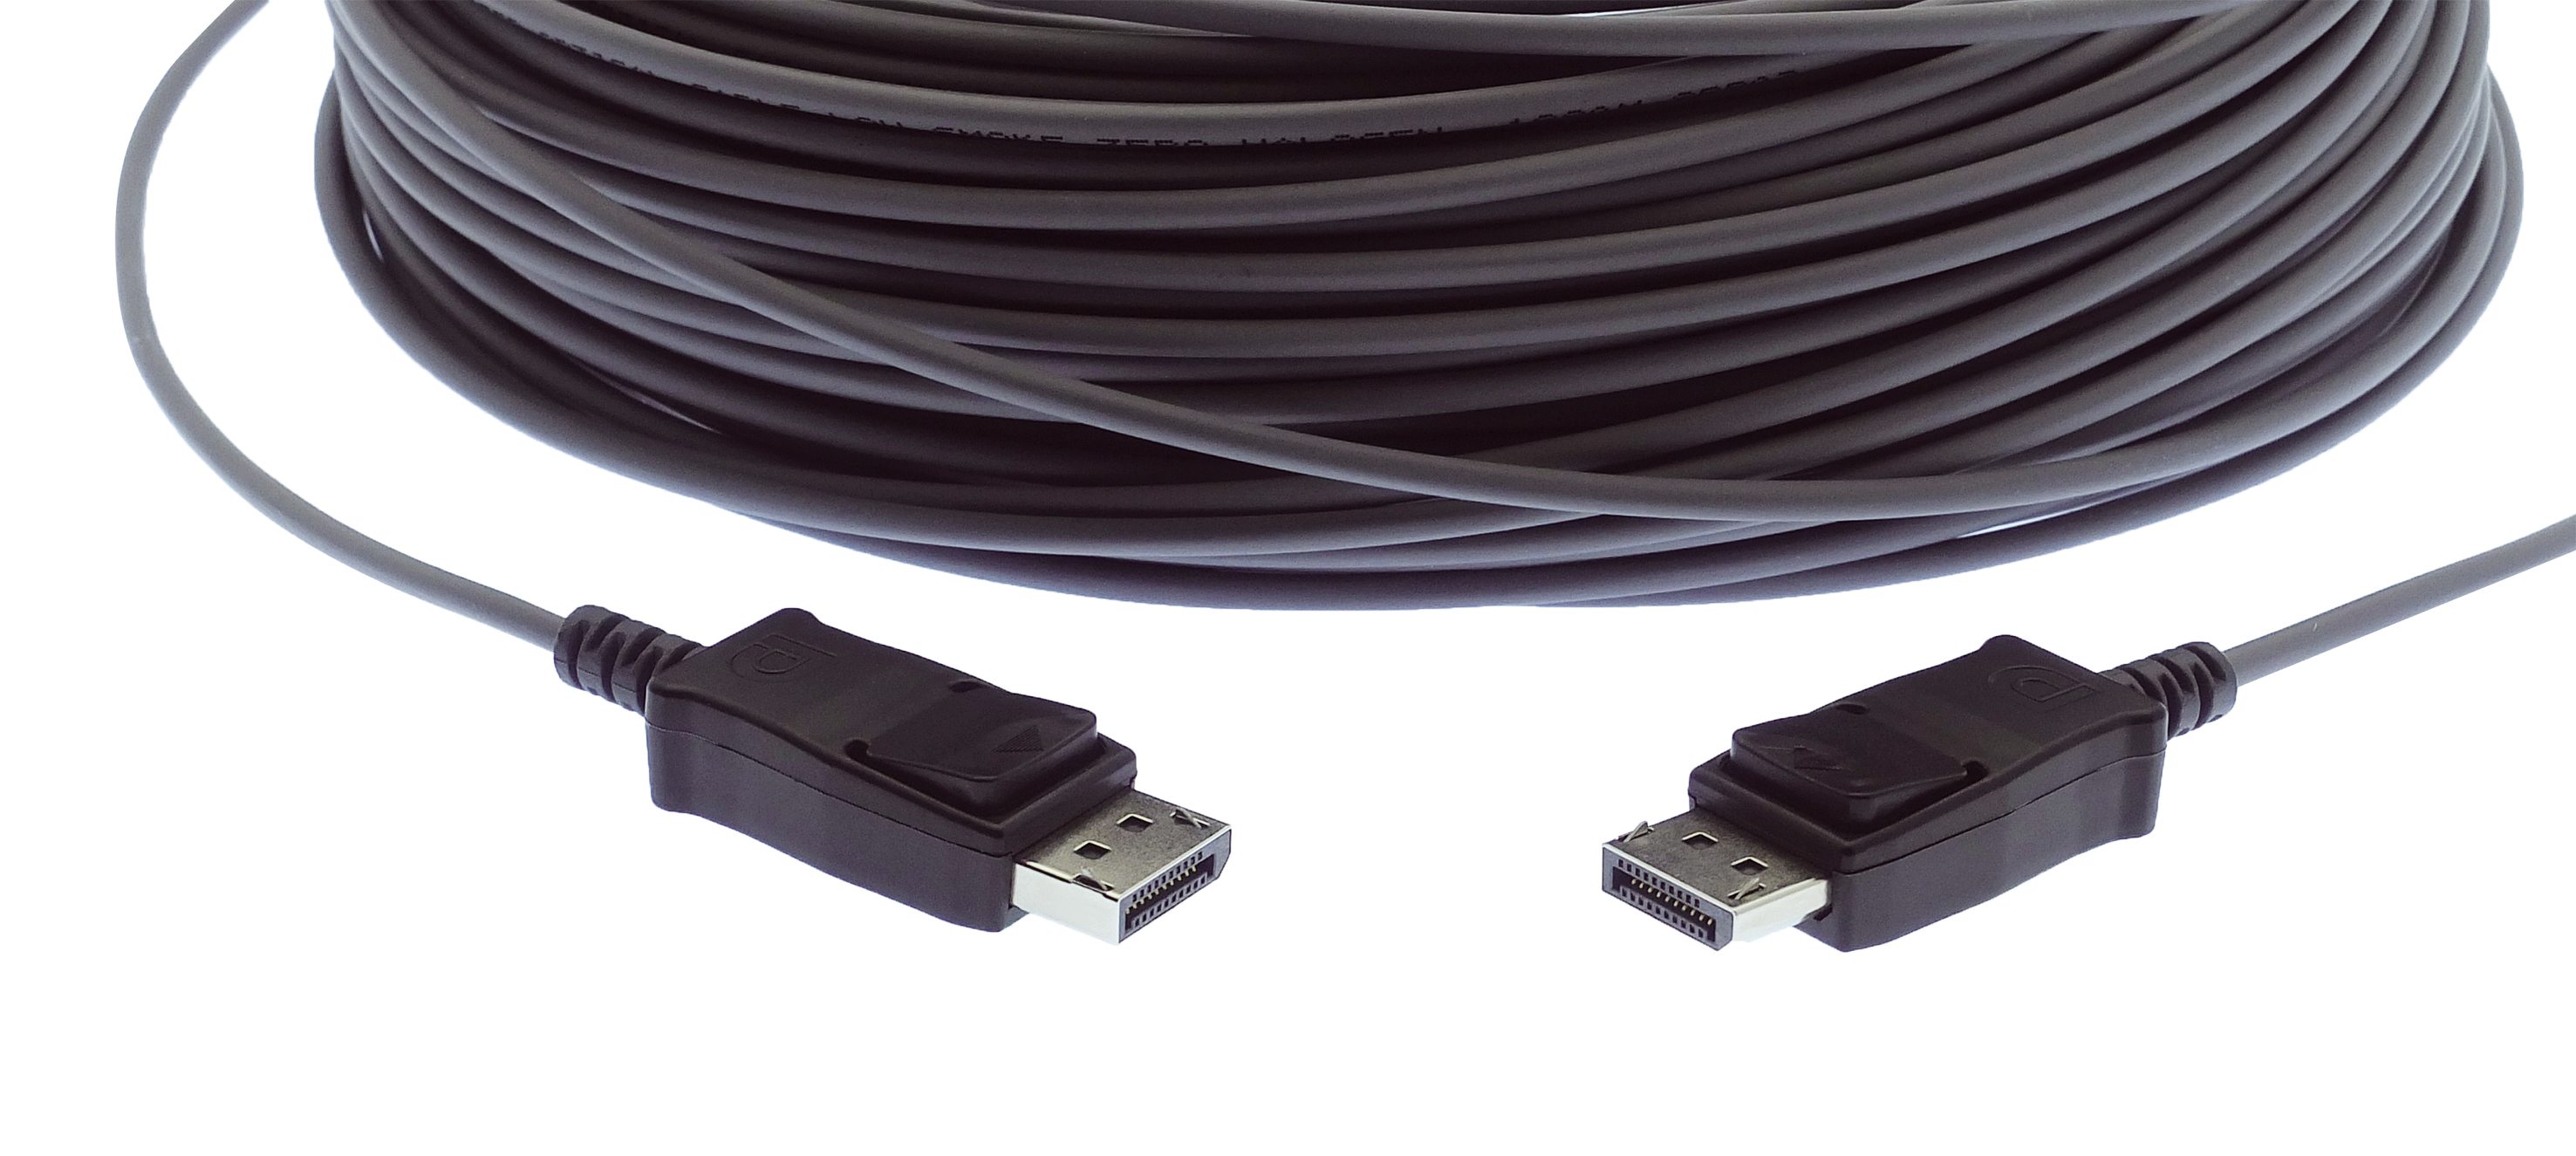 DisplayPort 1.2a Hybrid Cable